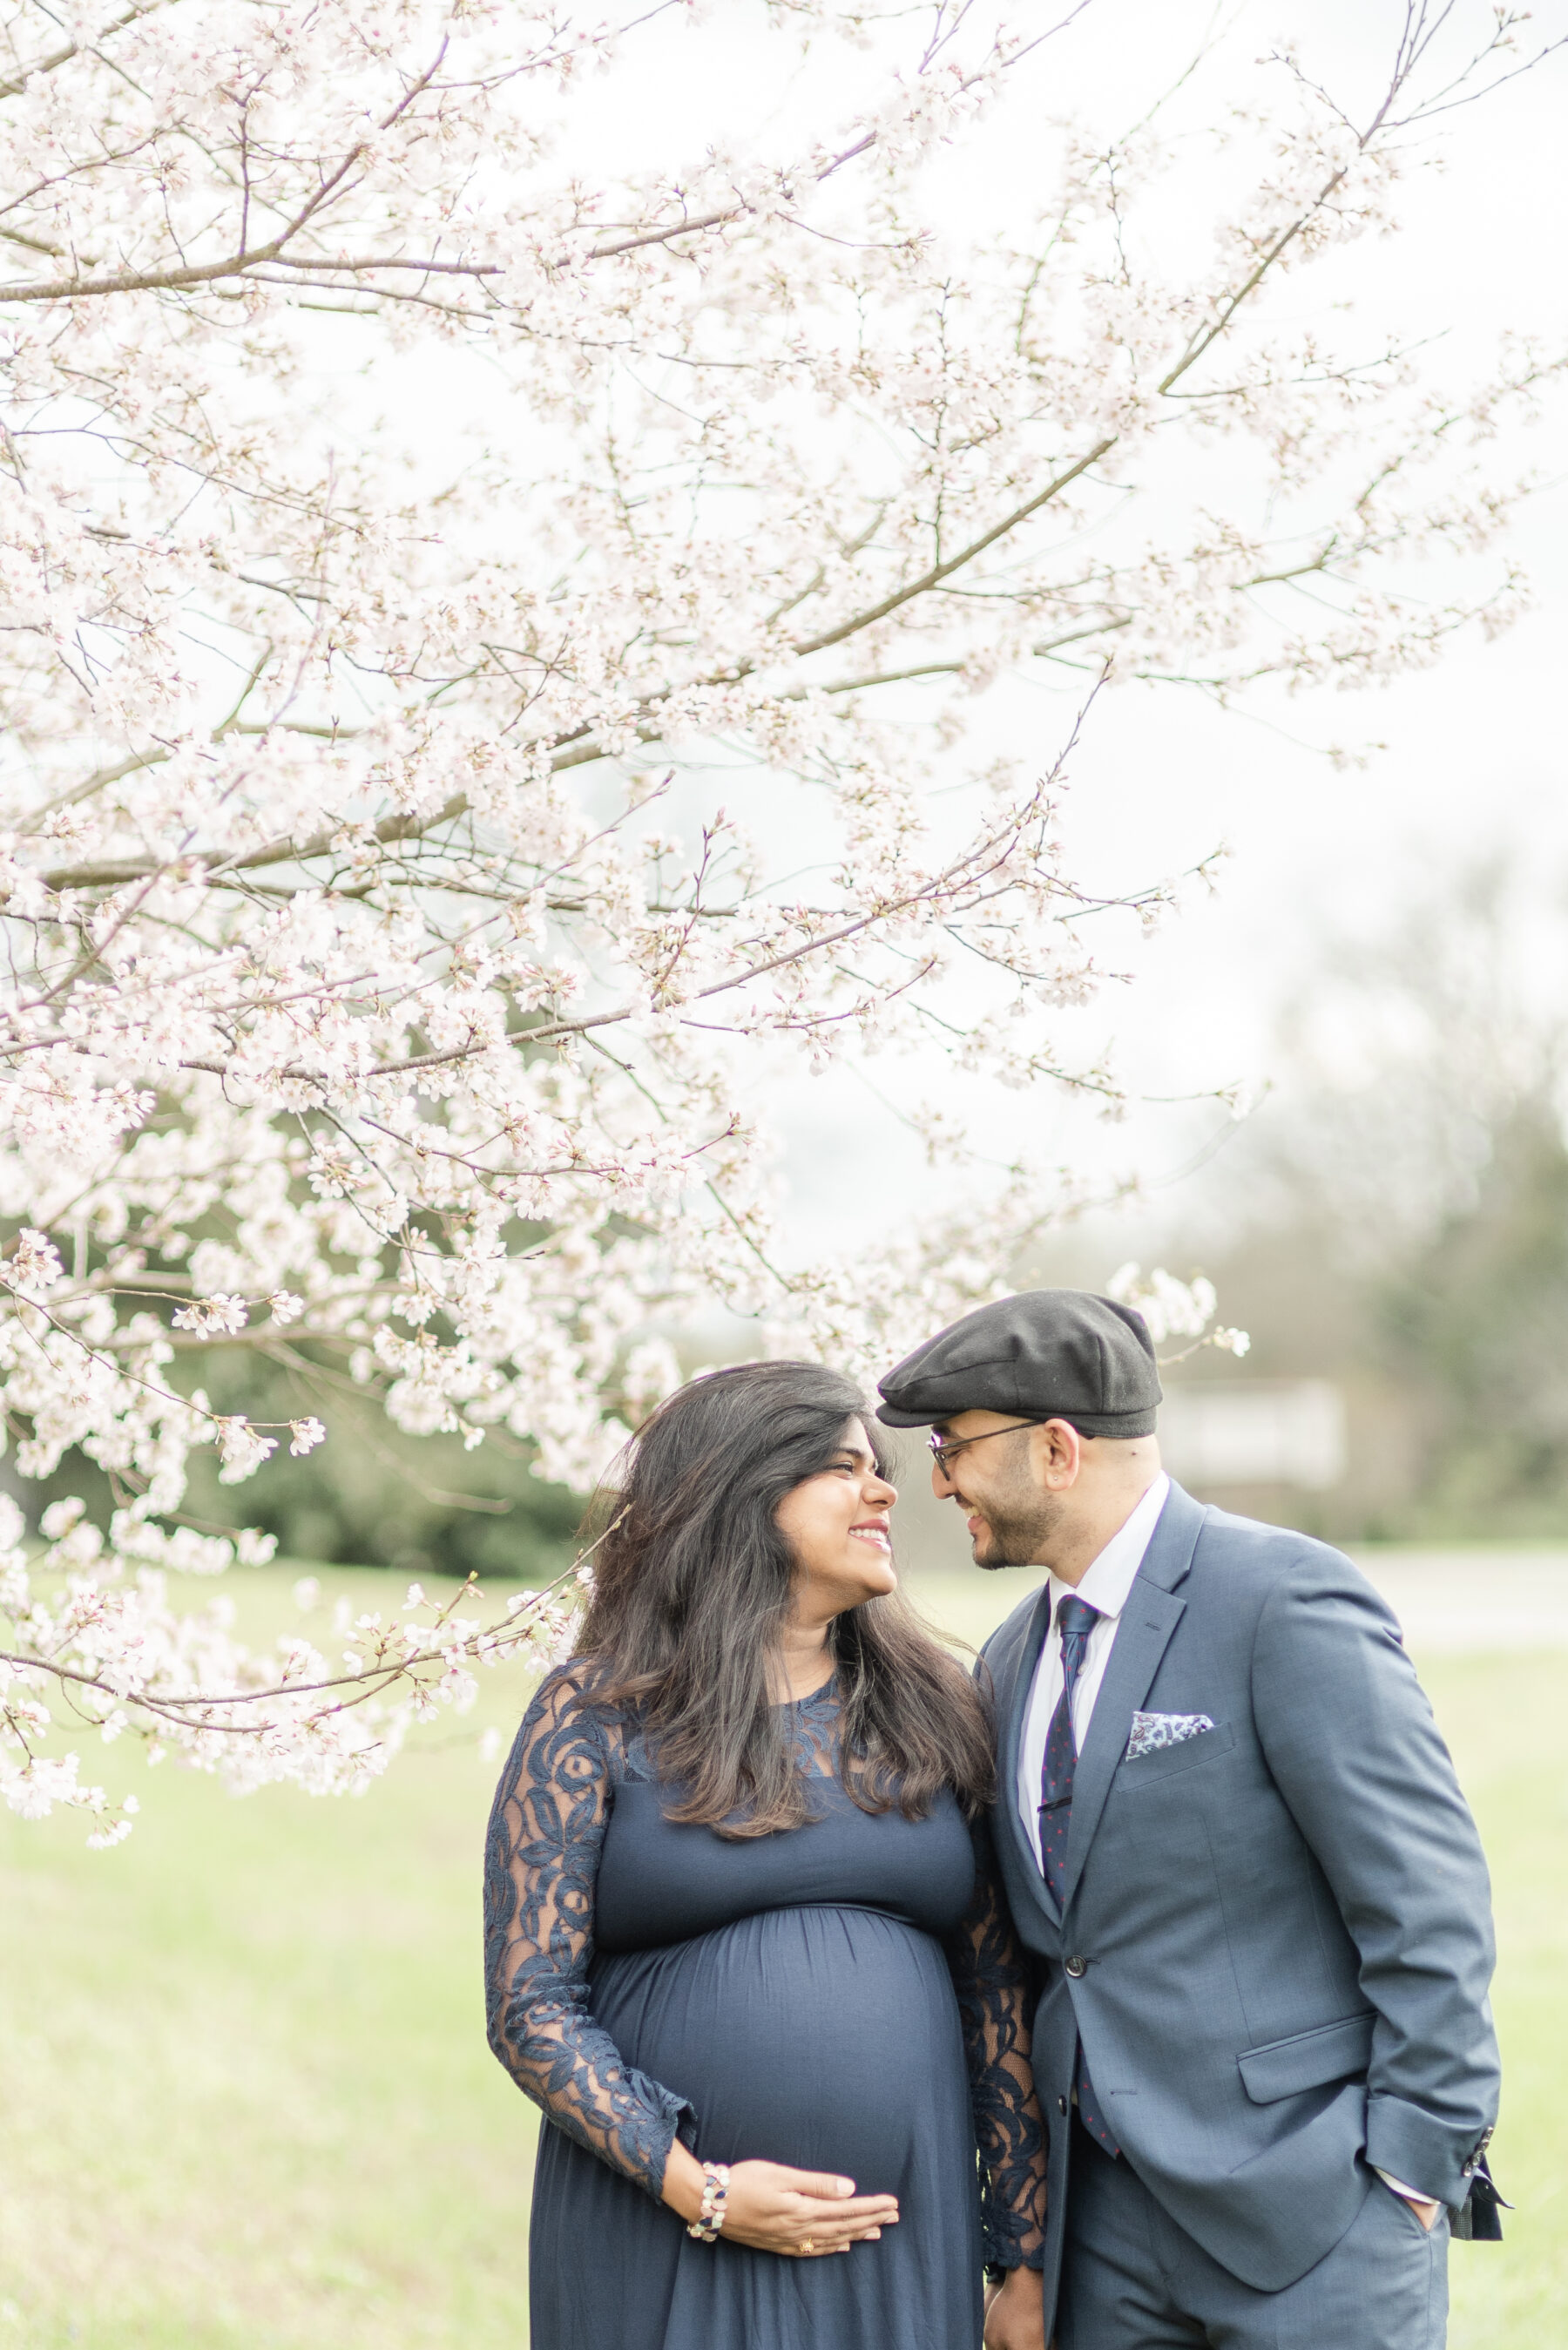 Ravenswood Mansion Maternity Session by Dolly Delong featured on Nashville Baby Guide